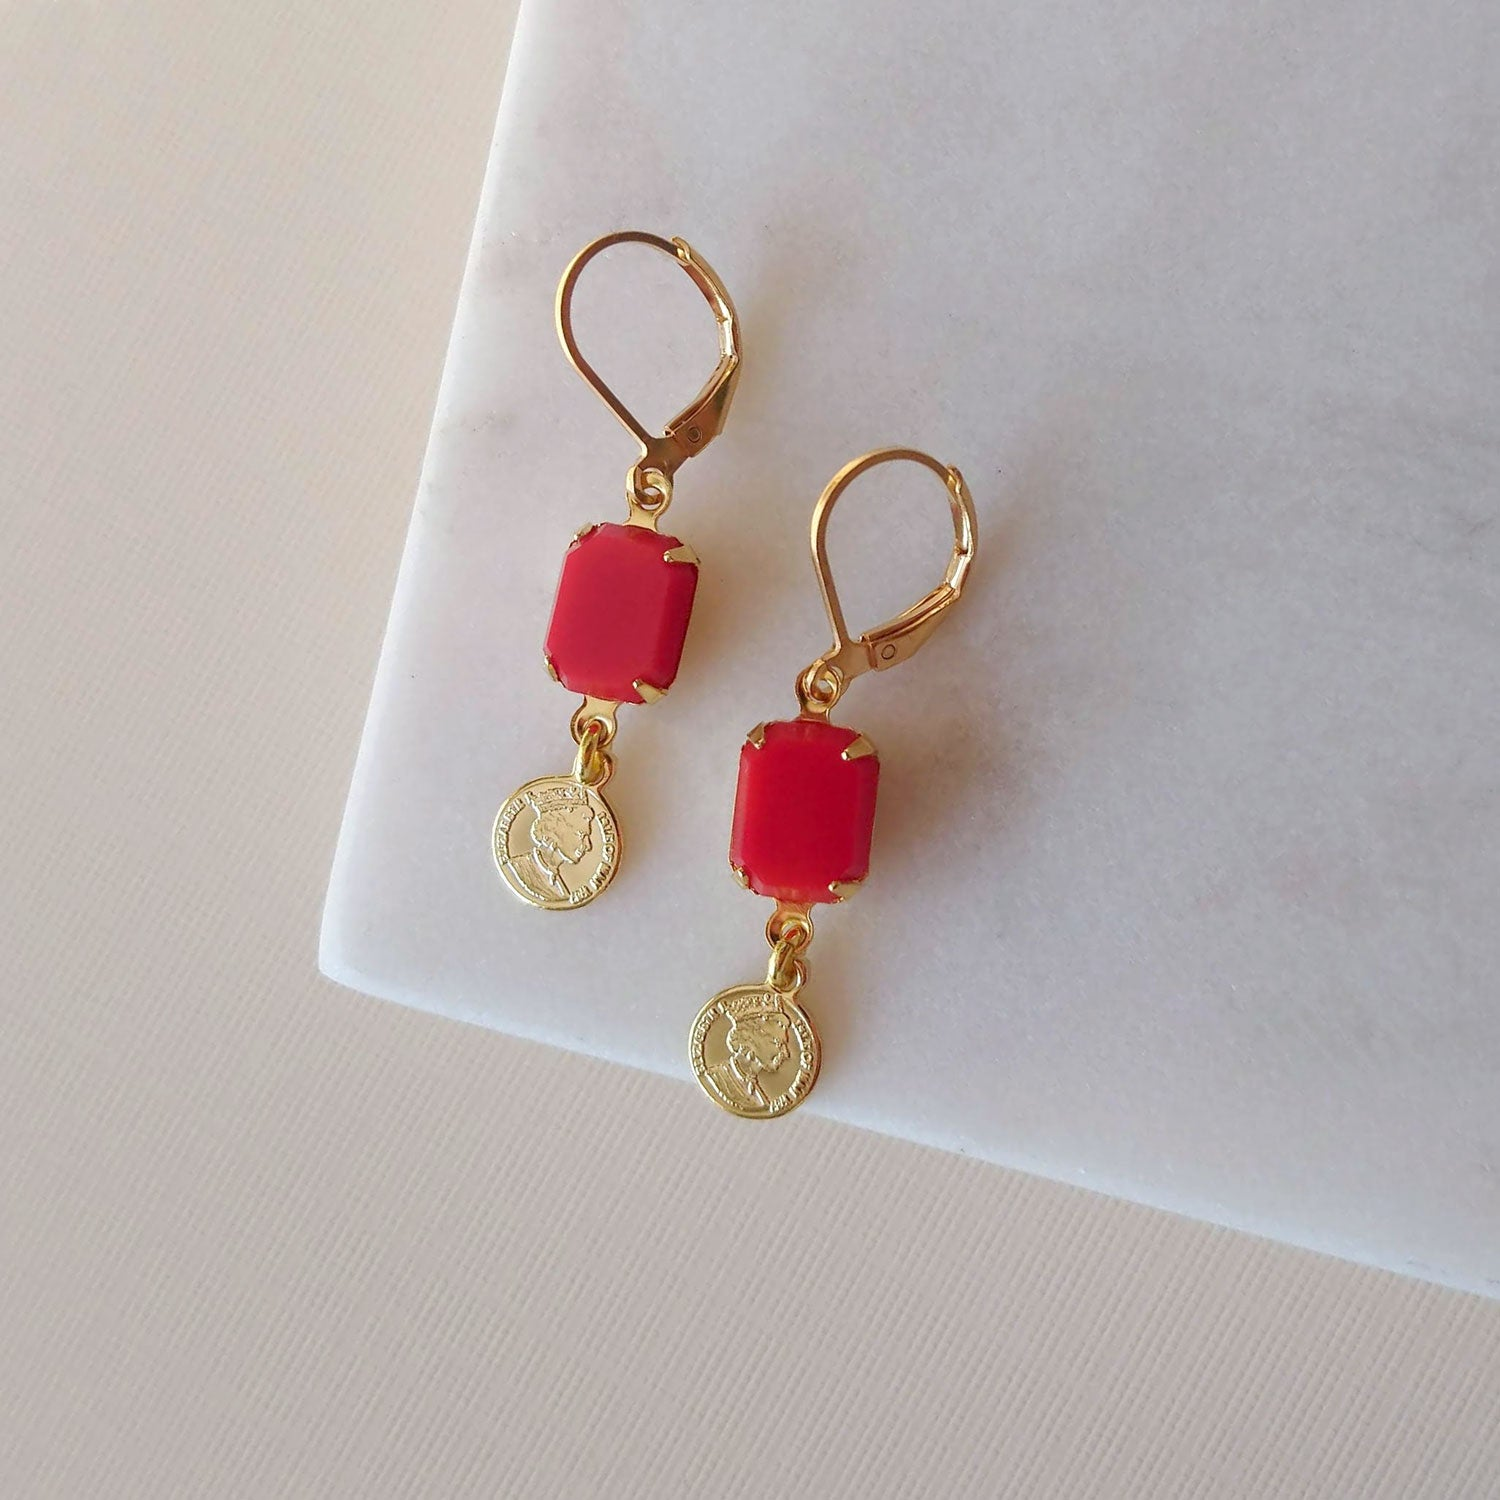 red earrings gold charm